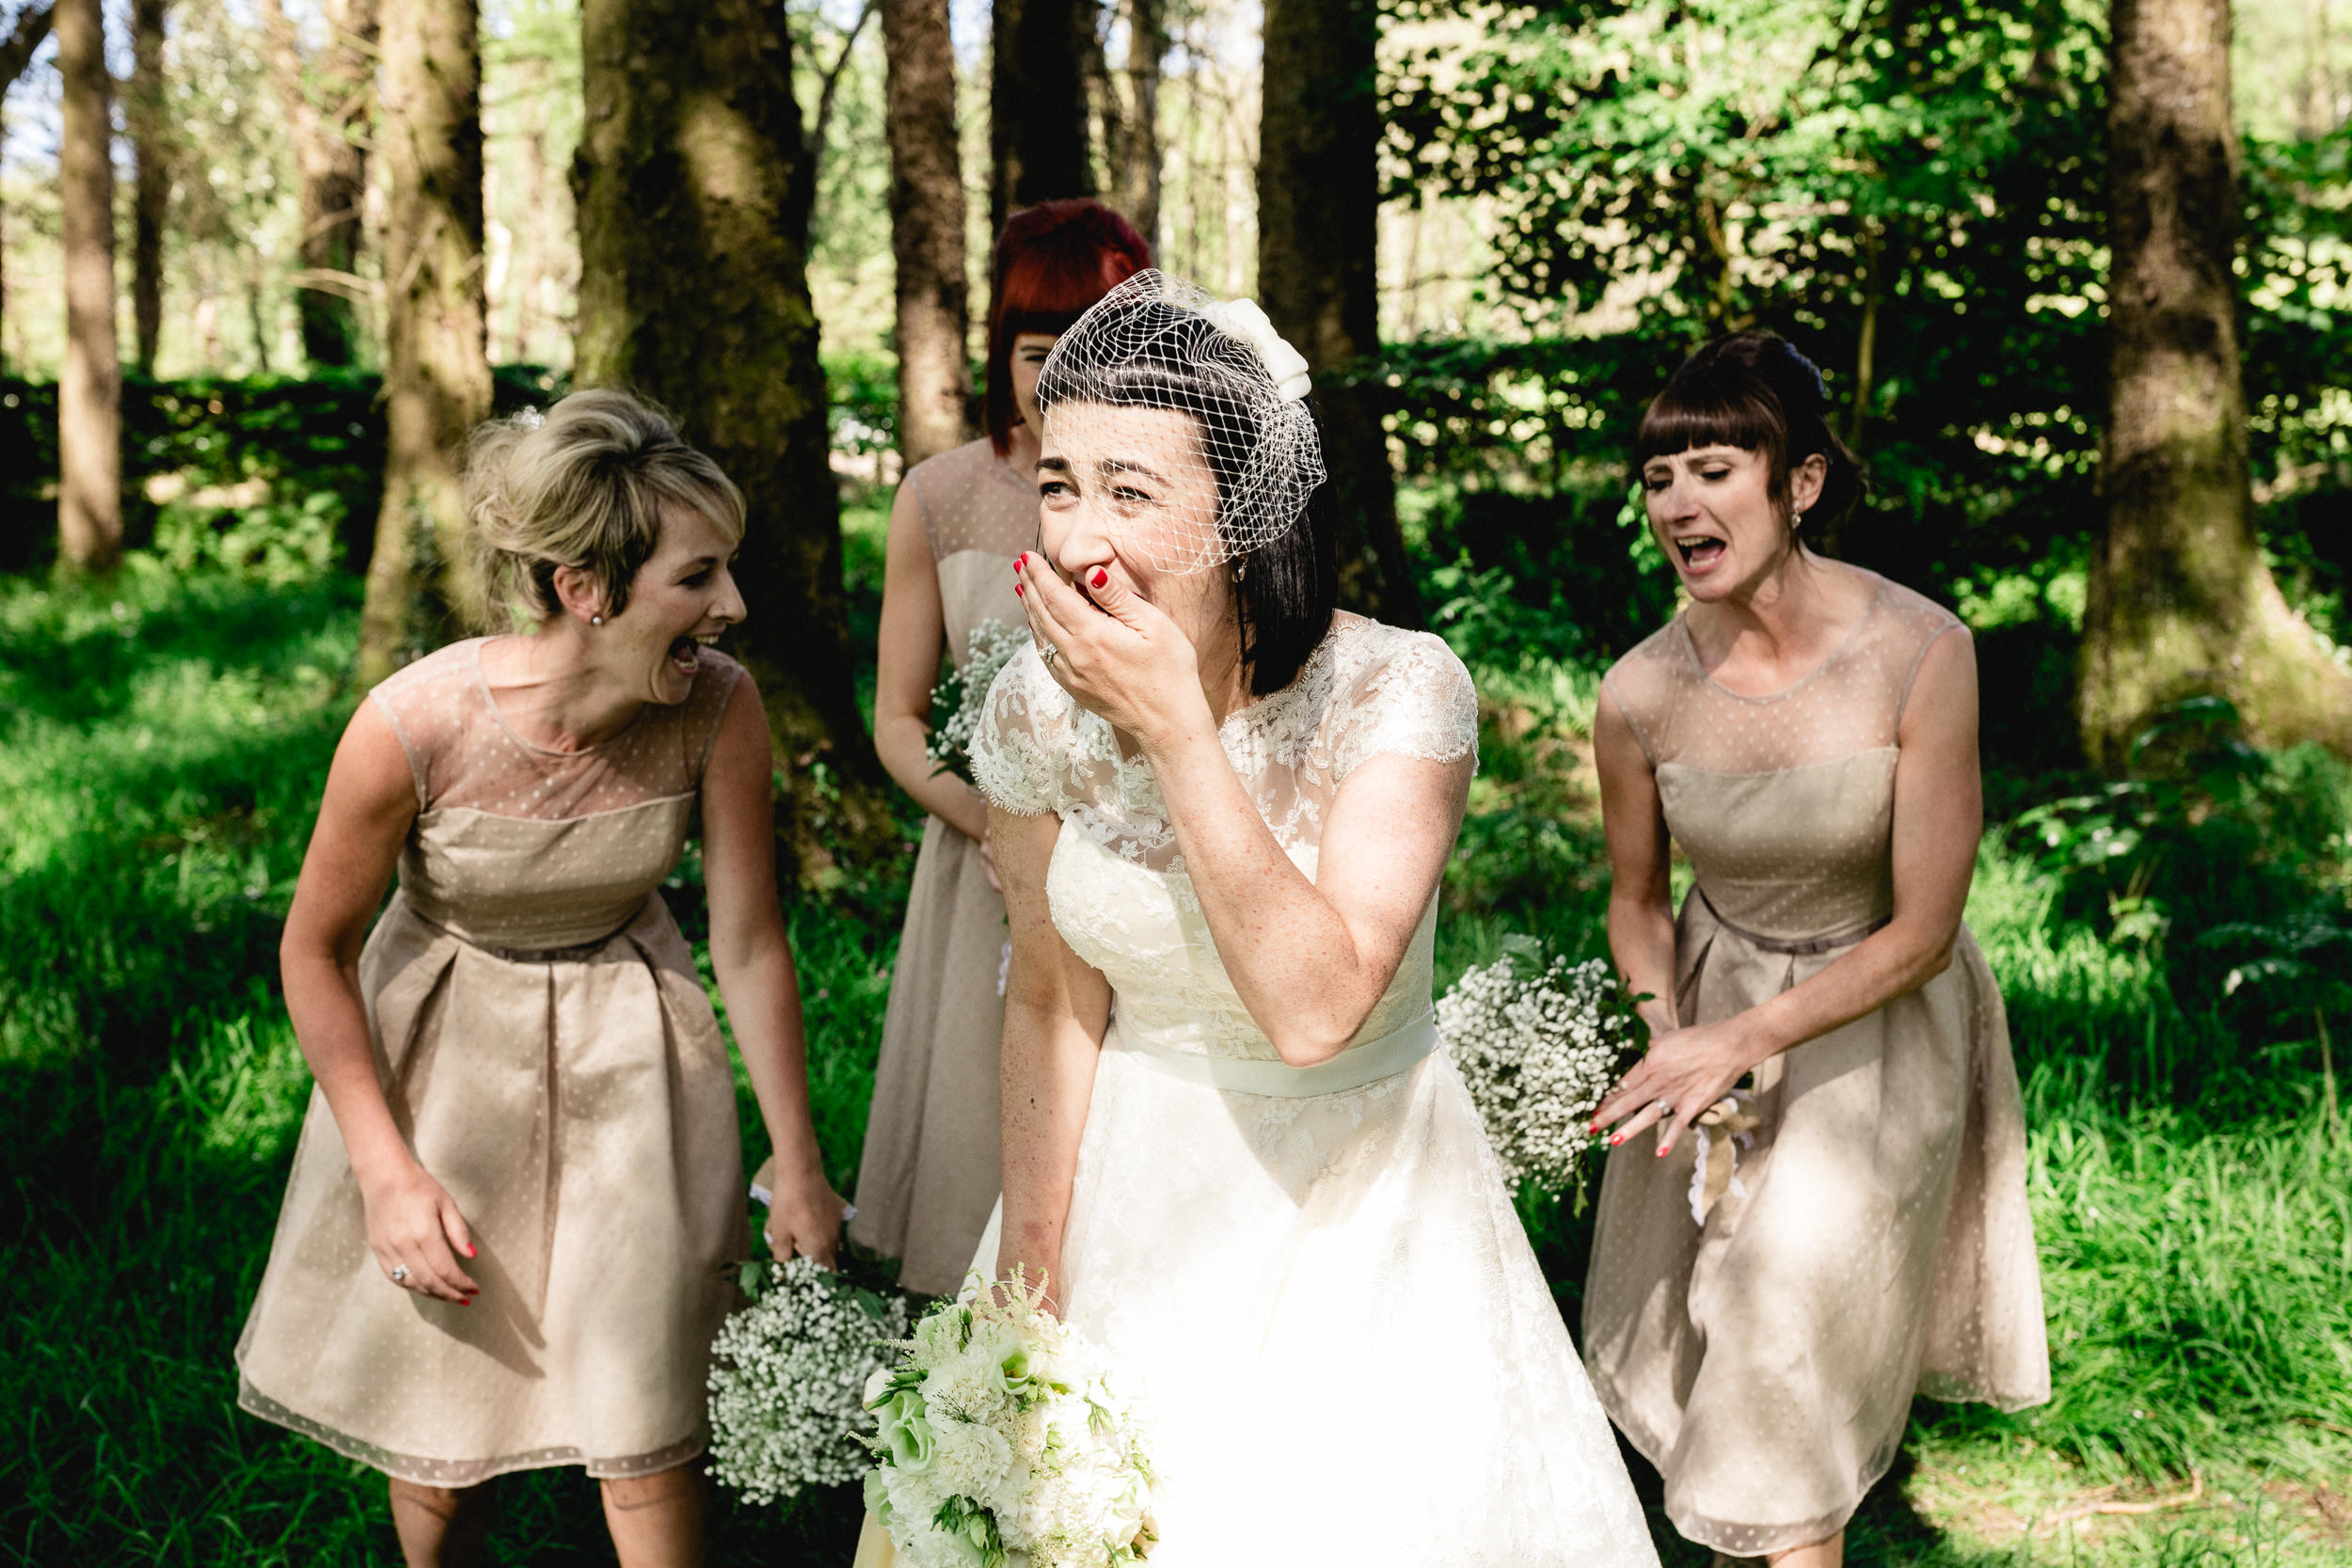 clairebyrnephotography-fun-wedding-photographer-ireland-creative-305.jpg